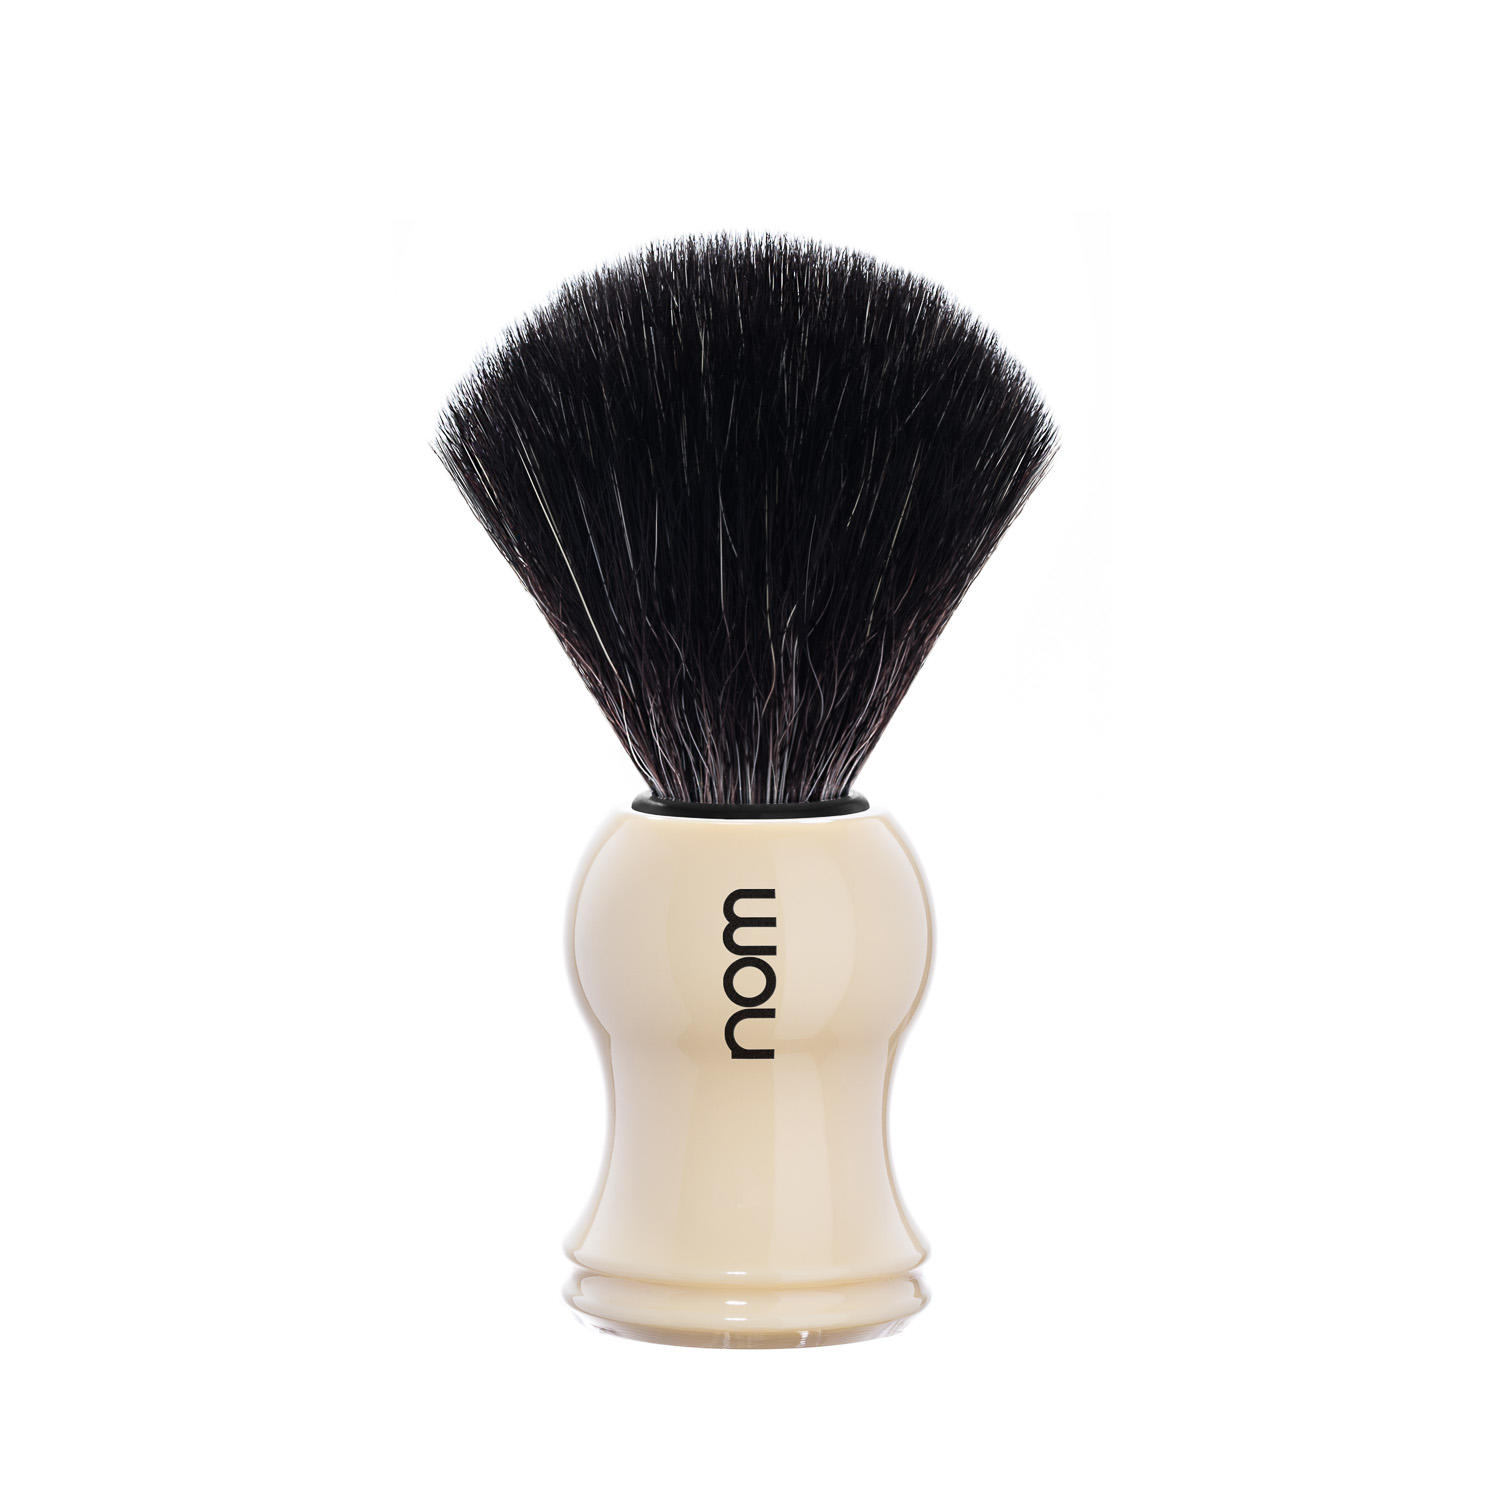 GUSTAV21CR nom LASSE, White, Black Fibre Shaving Brush